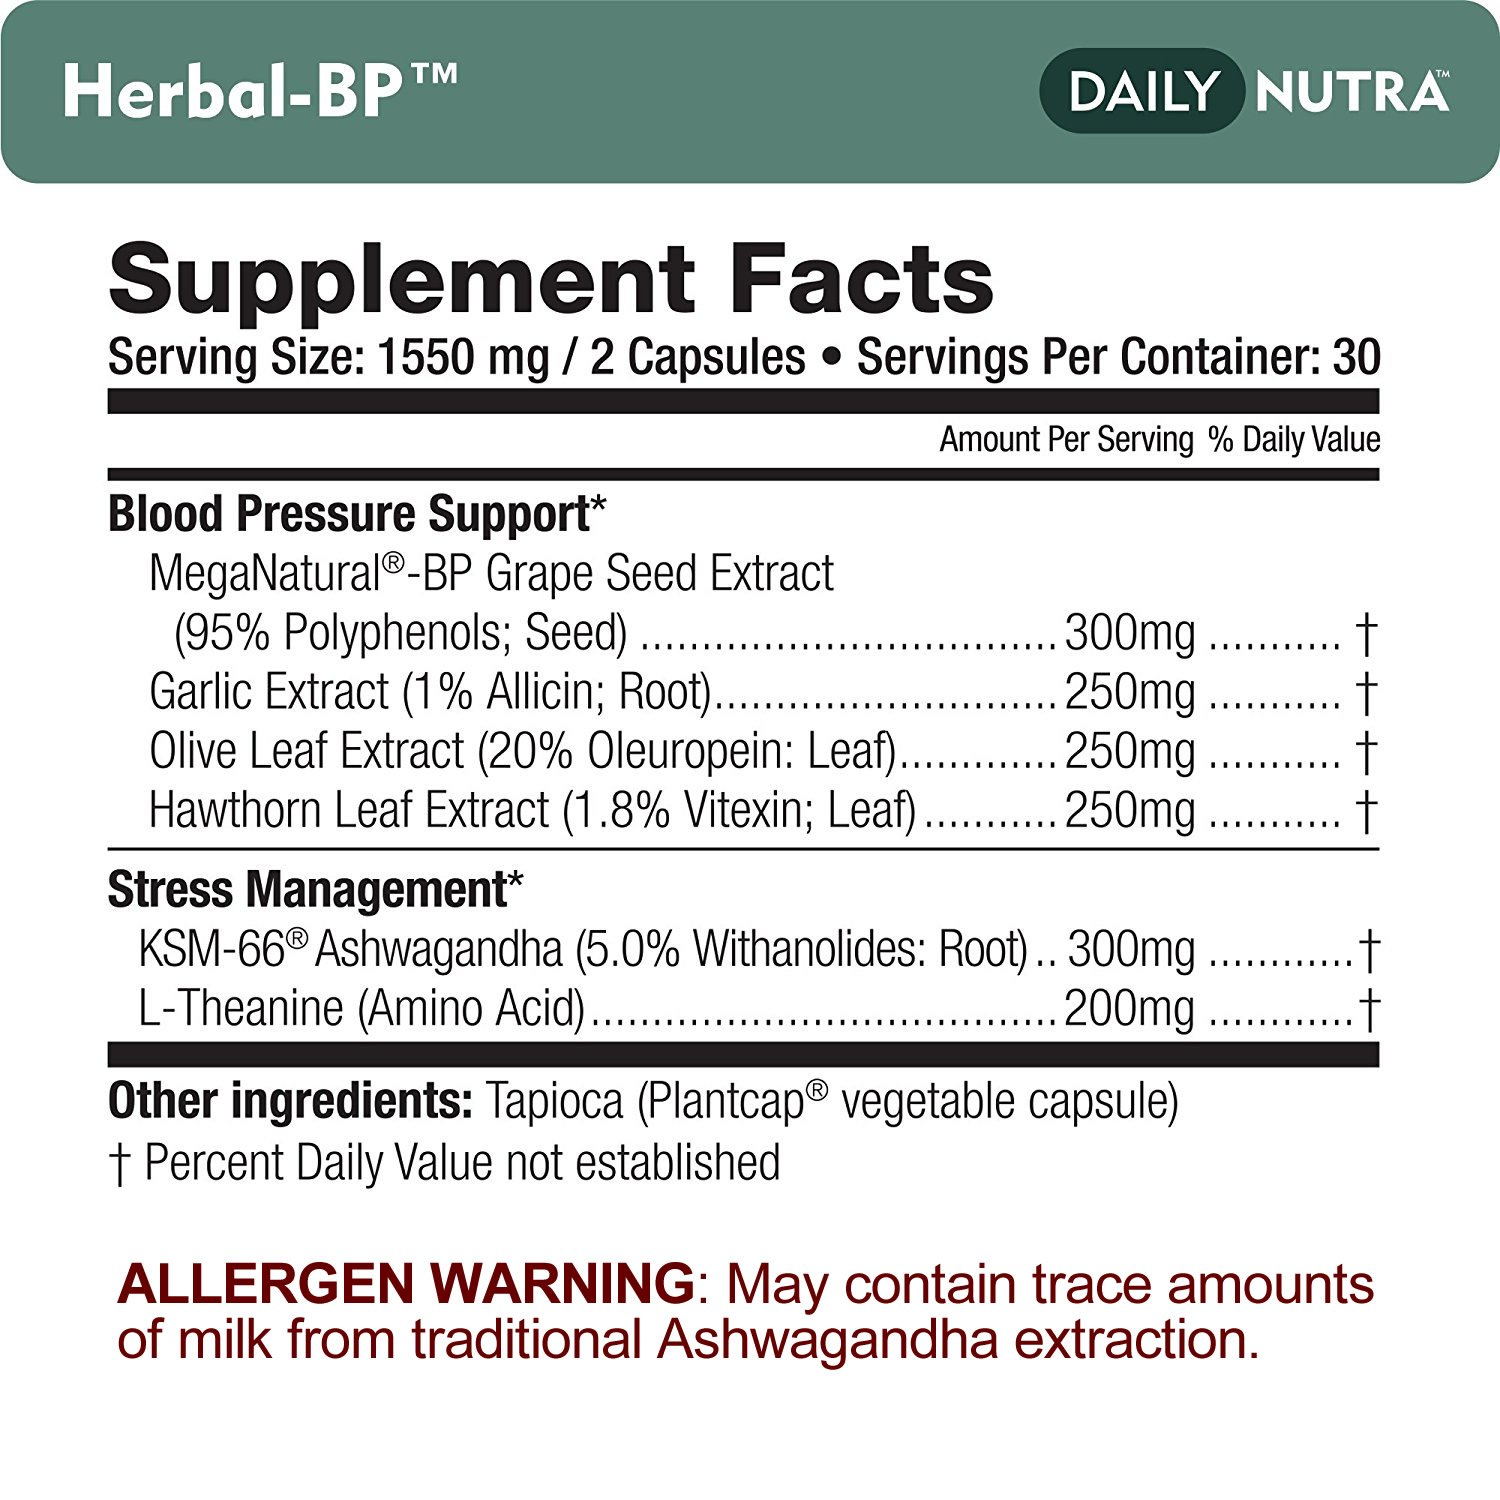 Herbal-BP Natural Blood Pressure Support with Stress Management - Medical Grade Botanical Extracts - Safe, Long-Term Support (3-Pack) by DailyNutra (Image #5)